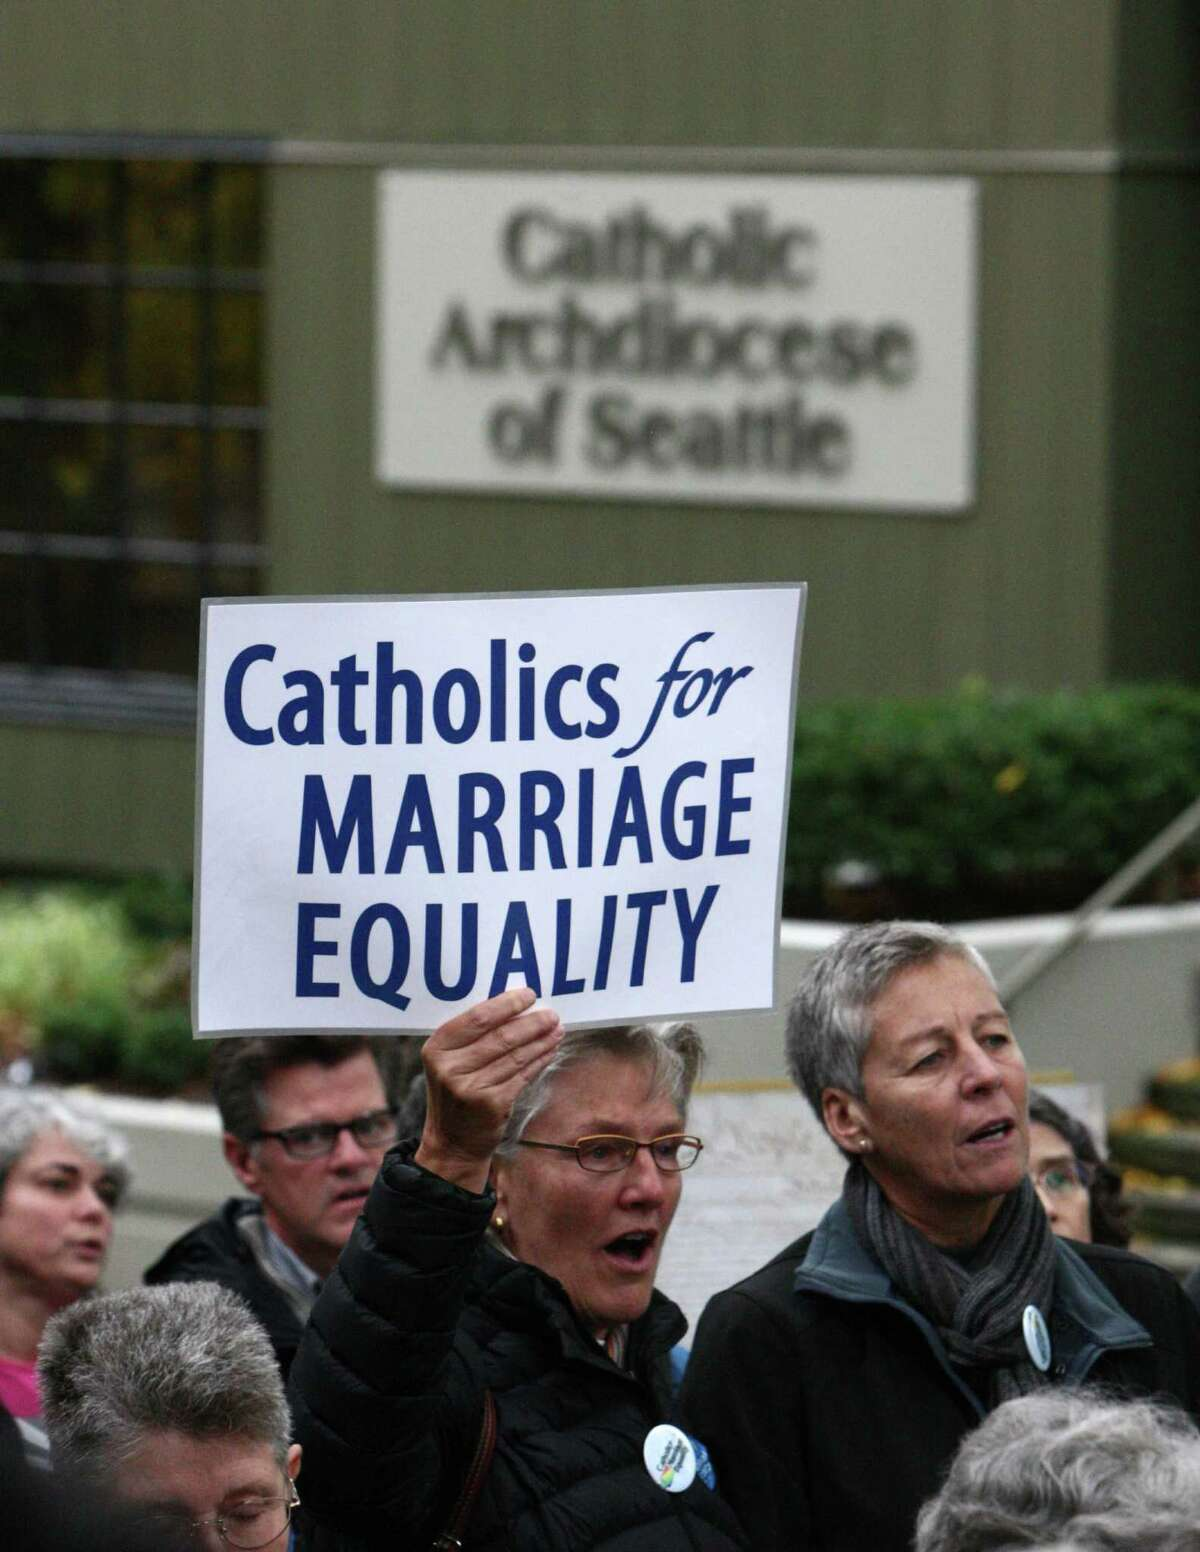 Participants sing as Catholics show support for marriage equality on Sunday, October 28th, 2012 on the sidewalk outside of Saint James Cathedral in Seattle. The group gathered to pray, sing and listen to speakers. The Archdiocese of Seattle, headquartered at the Cathedral, is officially opposed to Referendum 74. The stance has caused a division among some in the church.